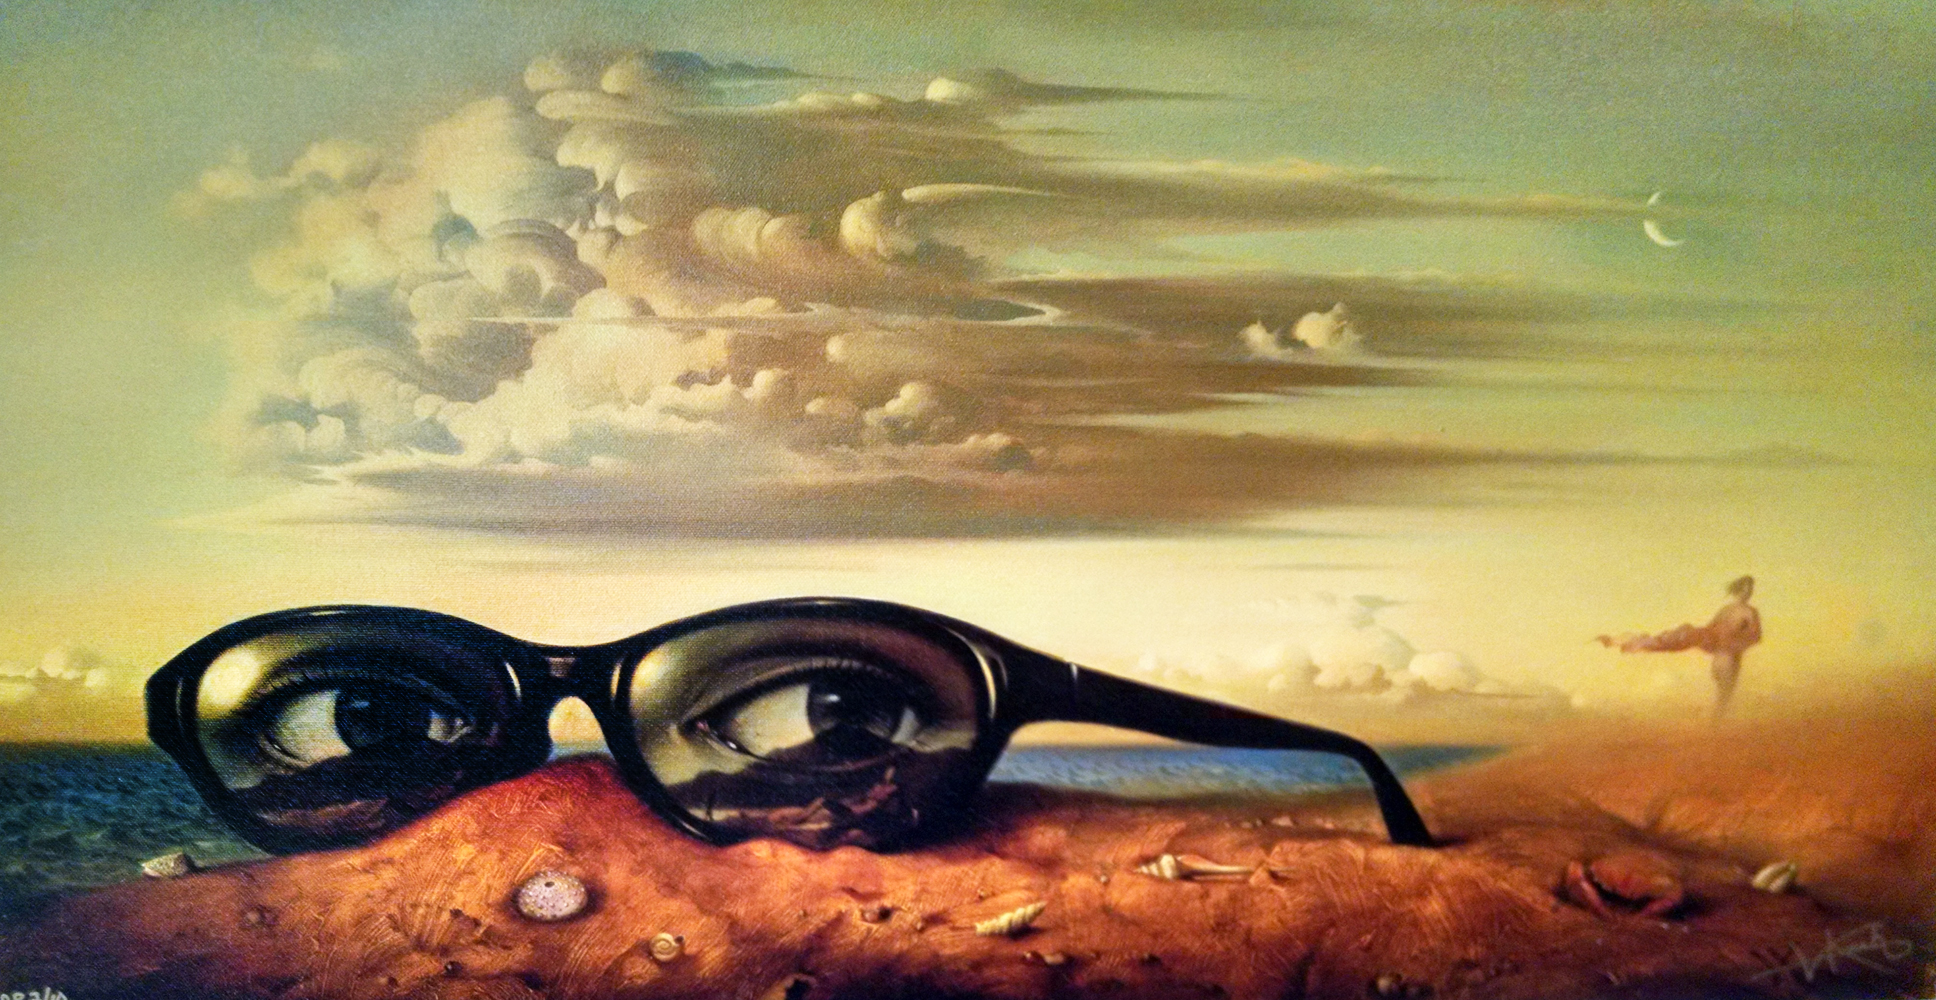 Vladimir kush art for sale for Painting for sale by artist